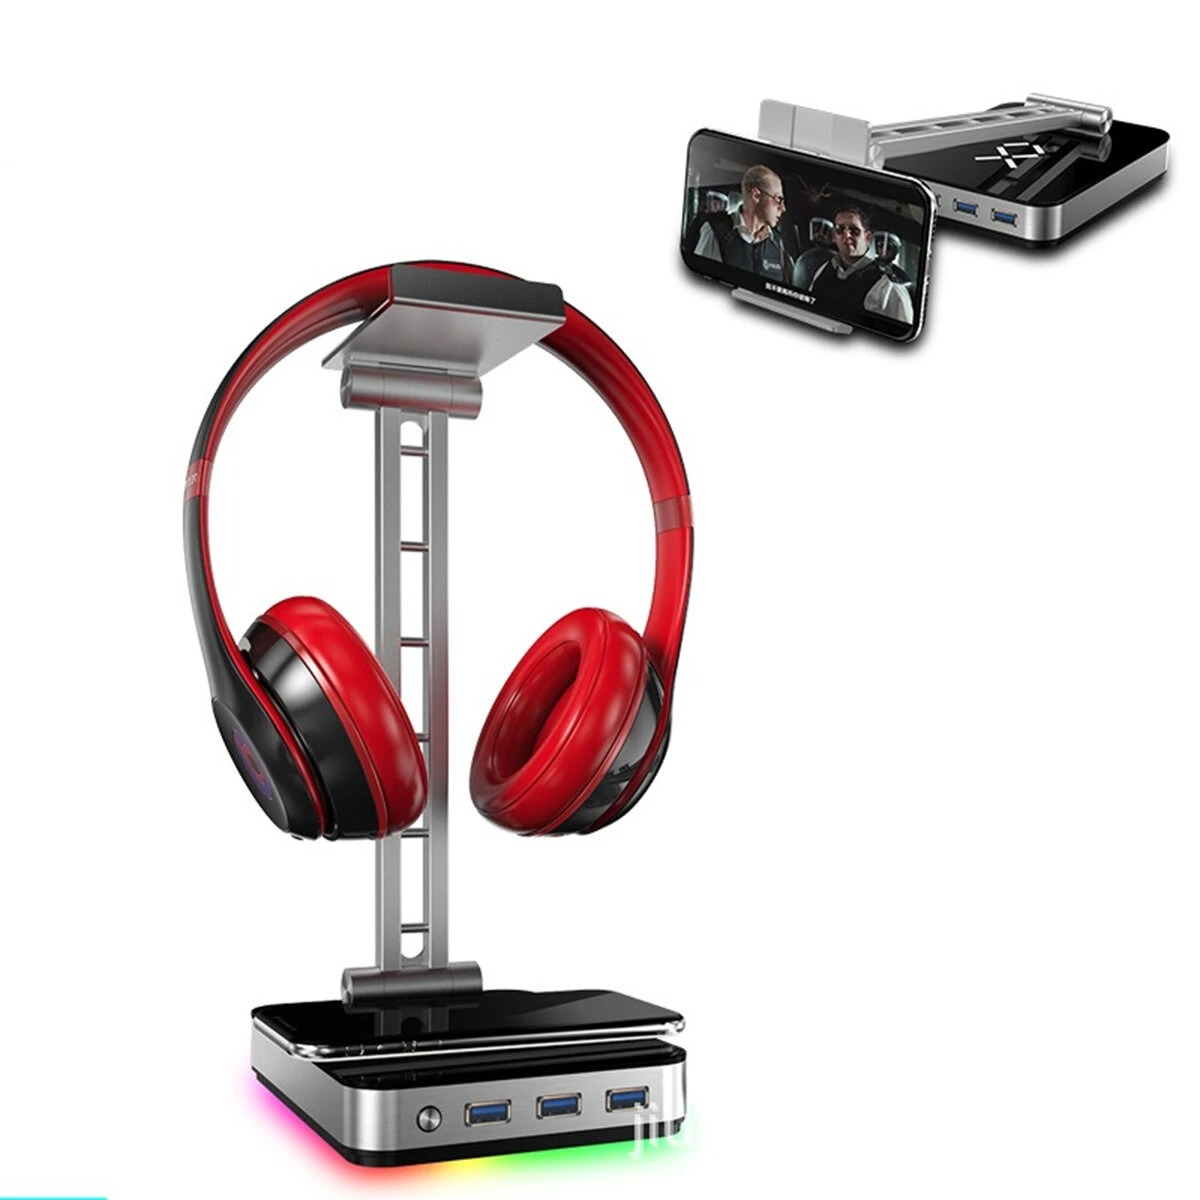 JIUSHARK JSR-1 RGB Headphones Stand with USB Ports